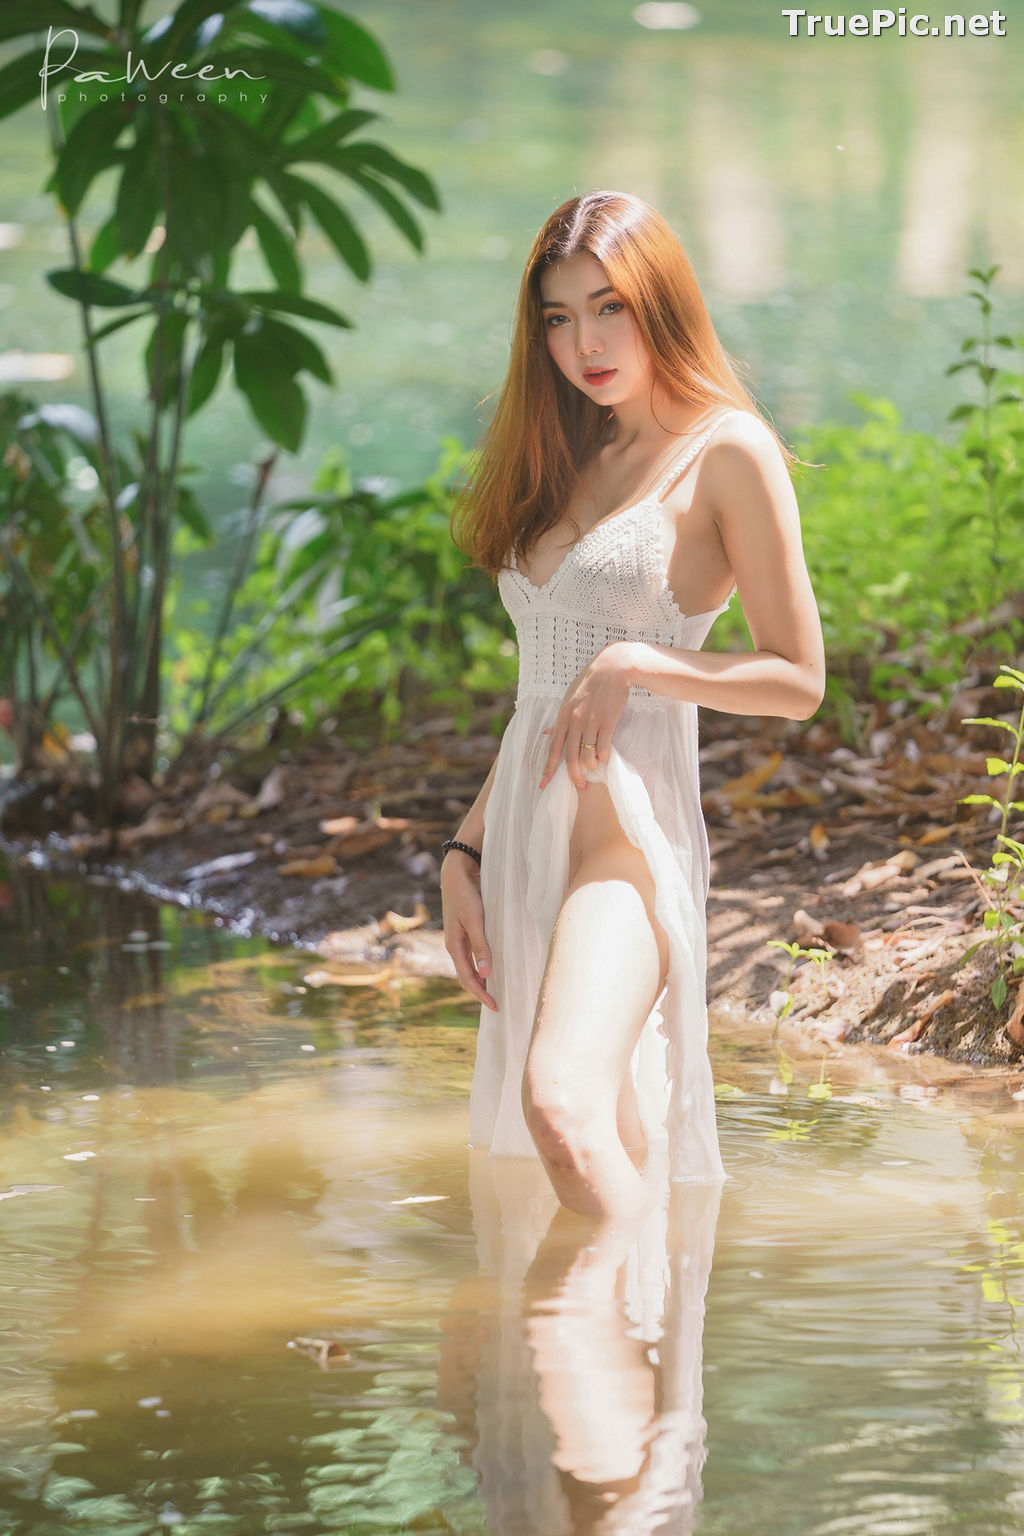 Image Thailand Model - Sirirut Thananet - Beautiful Angel and Small Stream - TruePic.net - Picture-3